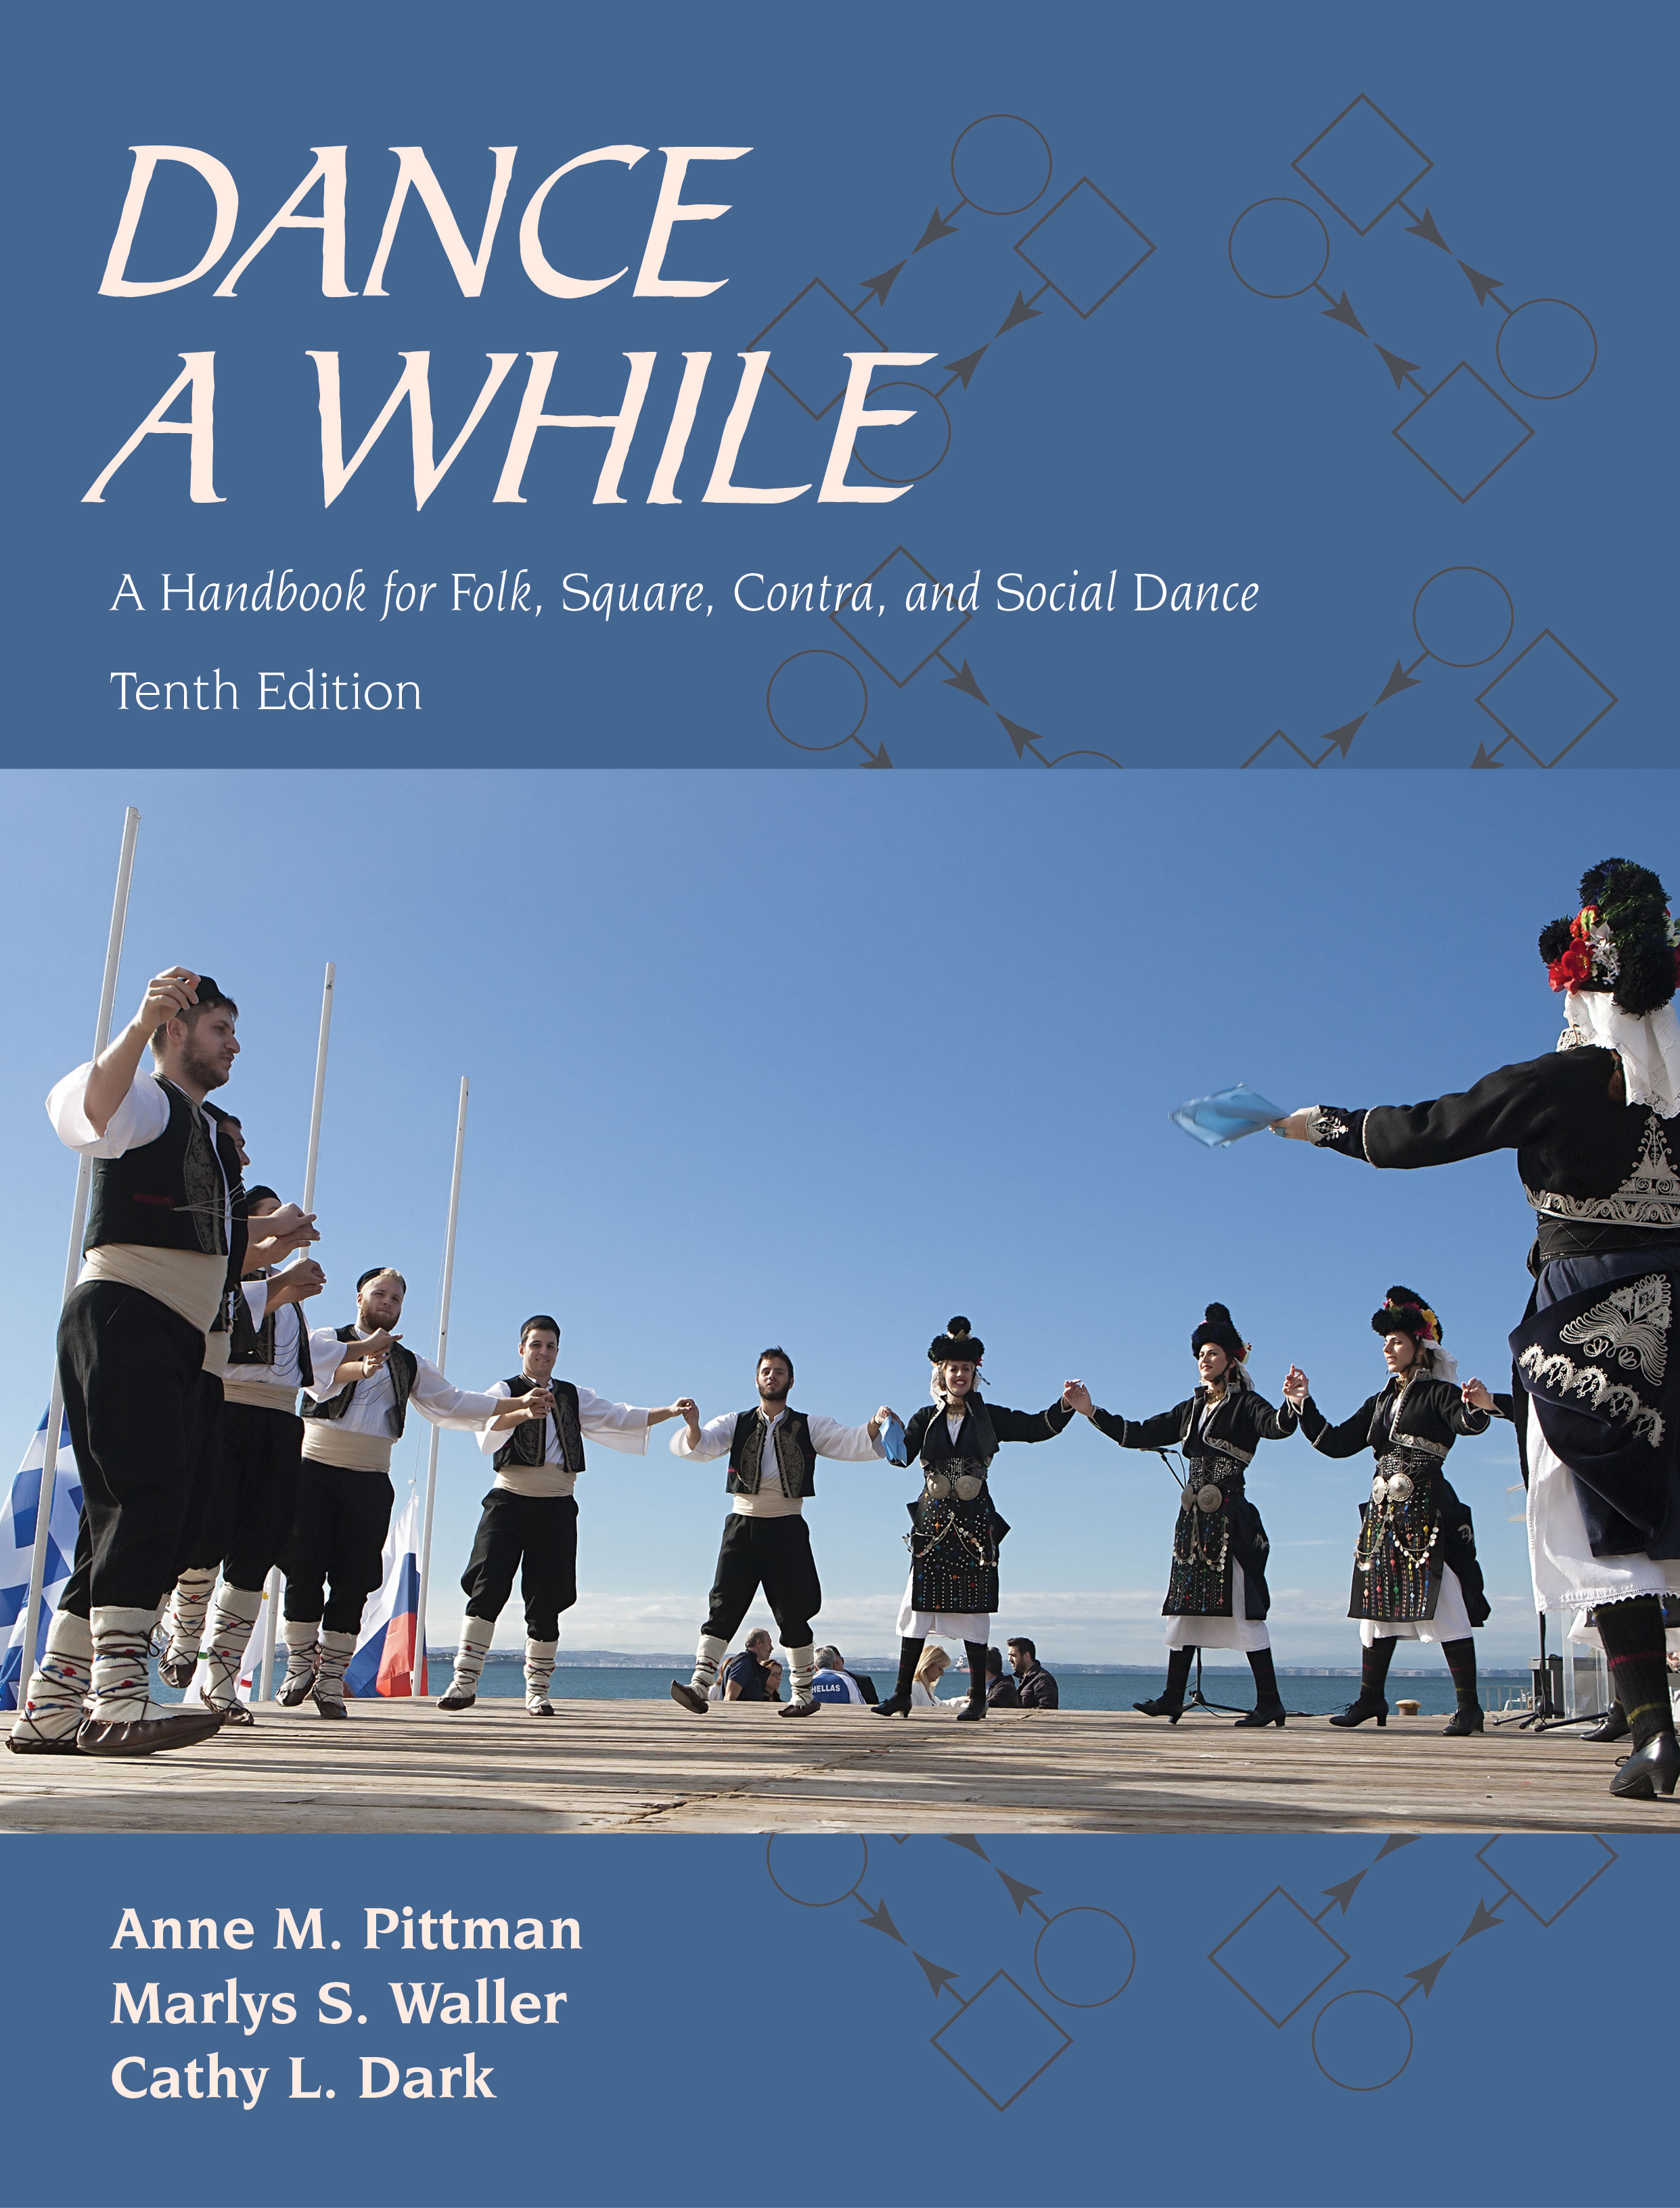 Dance a While: A Handbook for Folk, Square, Contra, and Social Dance by Anne M. Pittman, Marlys S. Waller, Cathy L. Dark